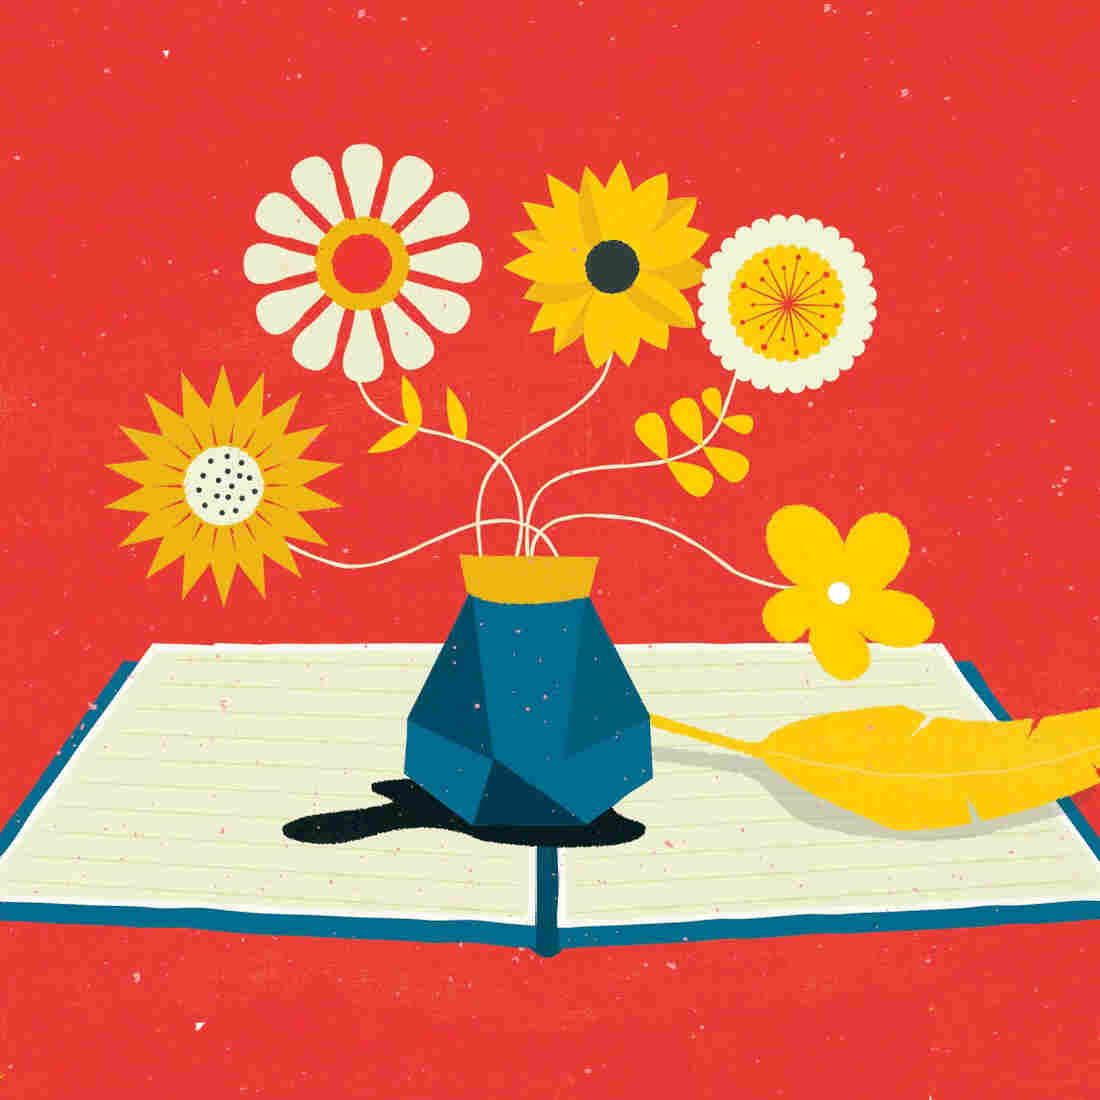 Illustration: A vase of flowers on top of a book.